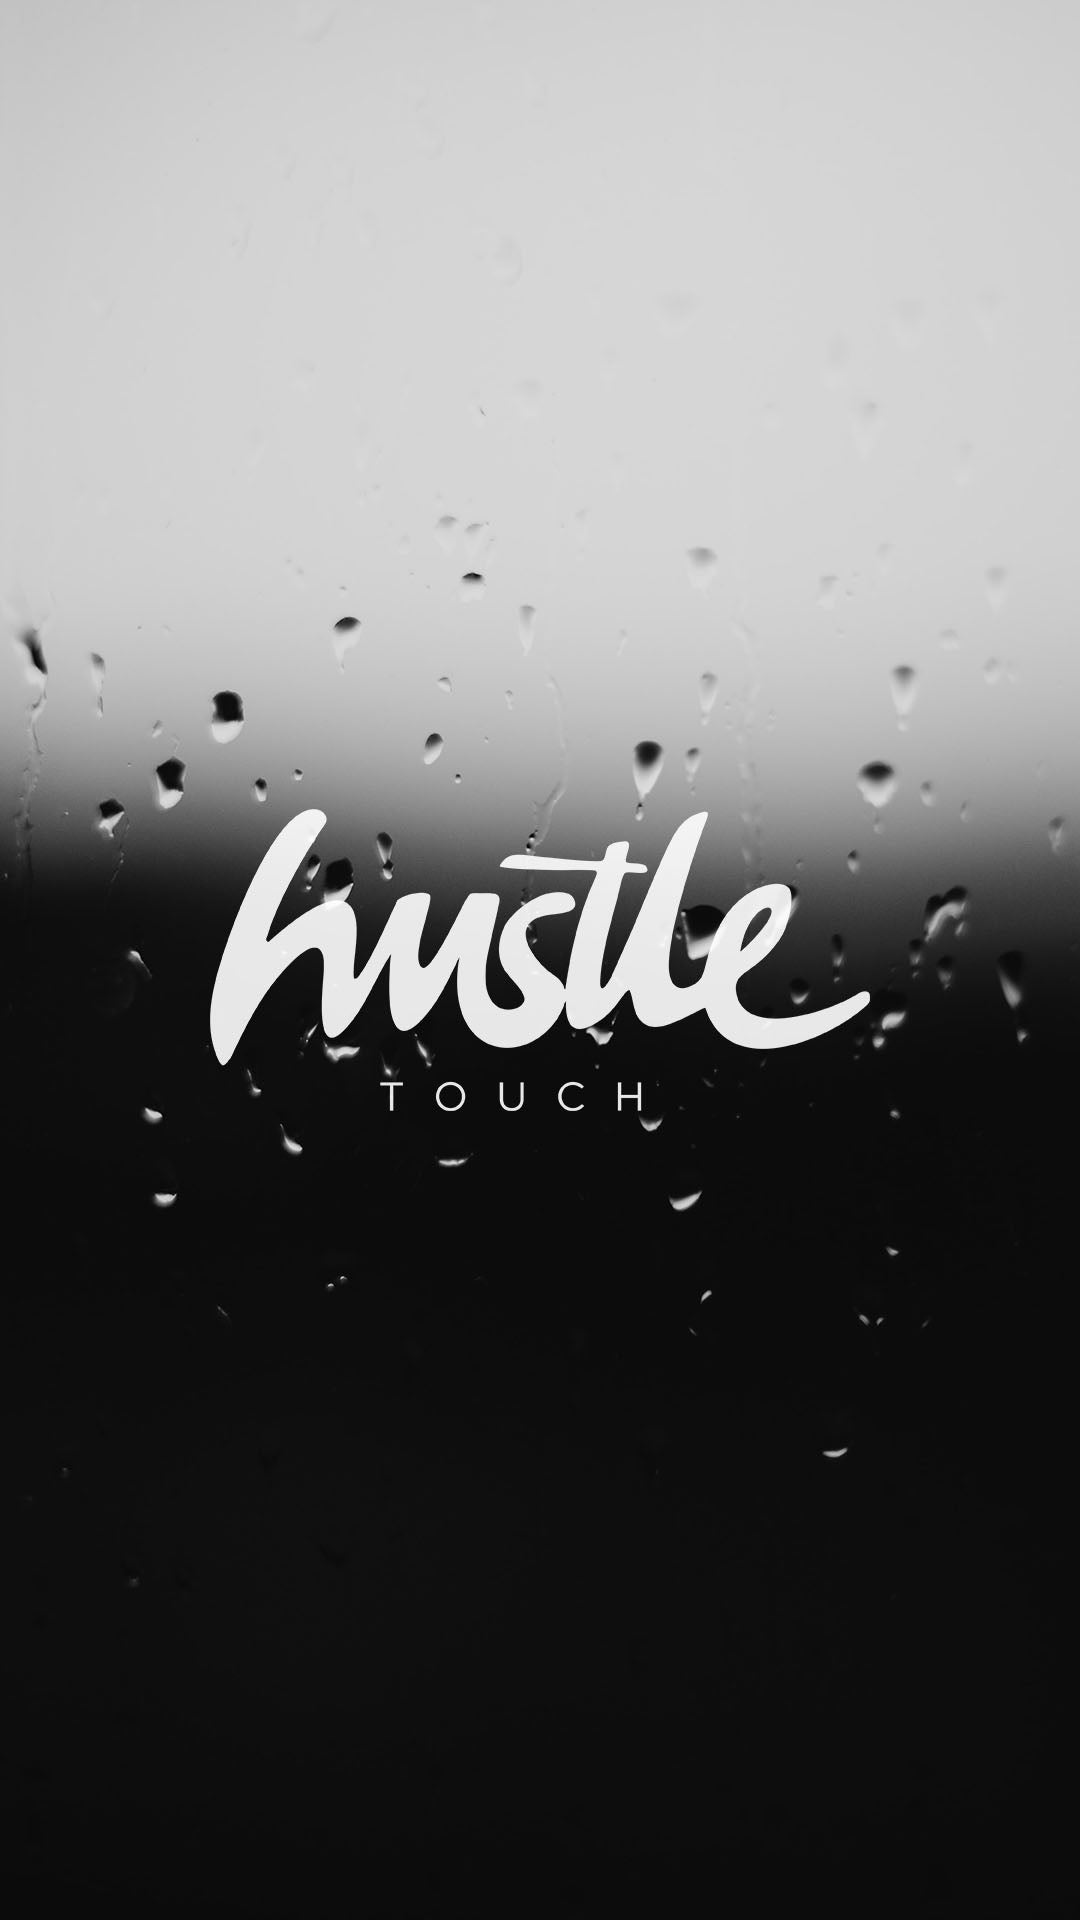 Get our Phone Hustle Touch Wallpaper 011 for free